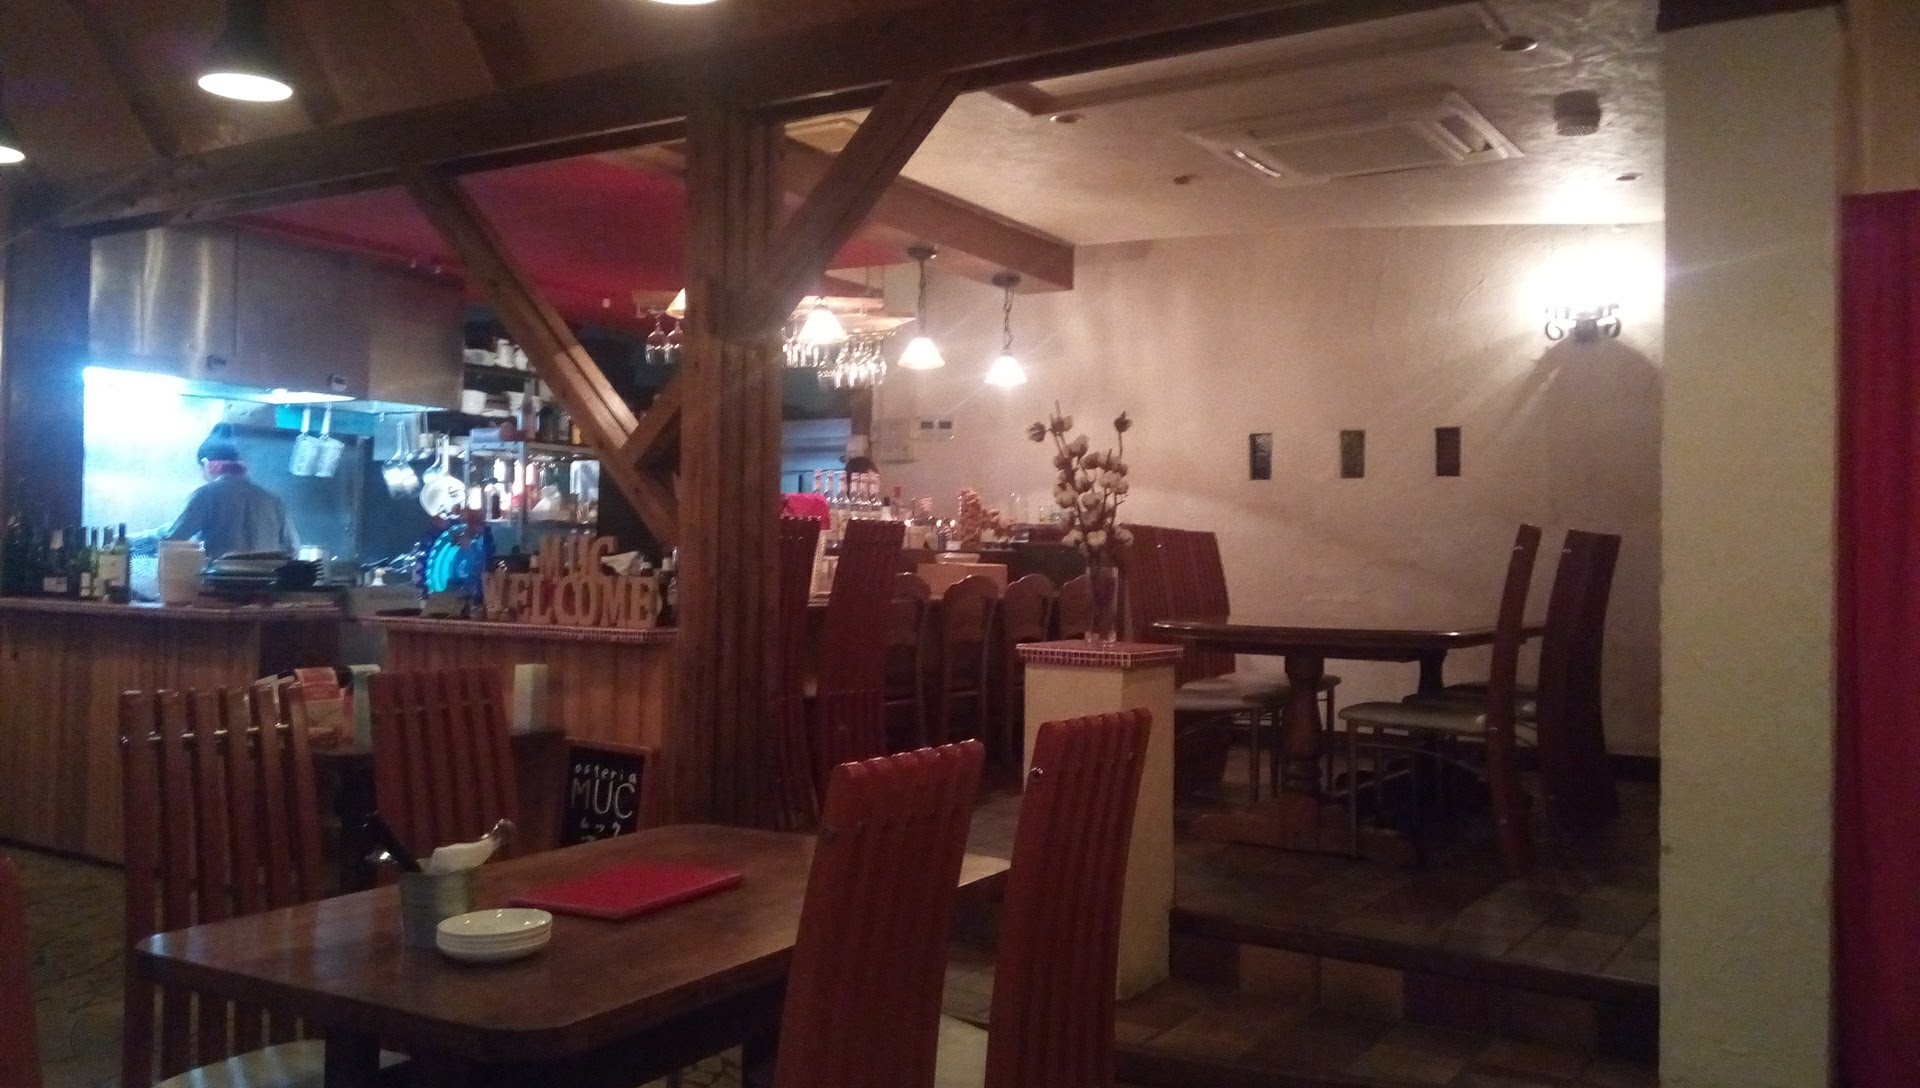 The interior is the atmosphere of a small cute Italian restaurant based on trees